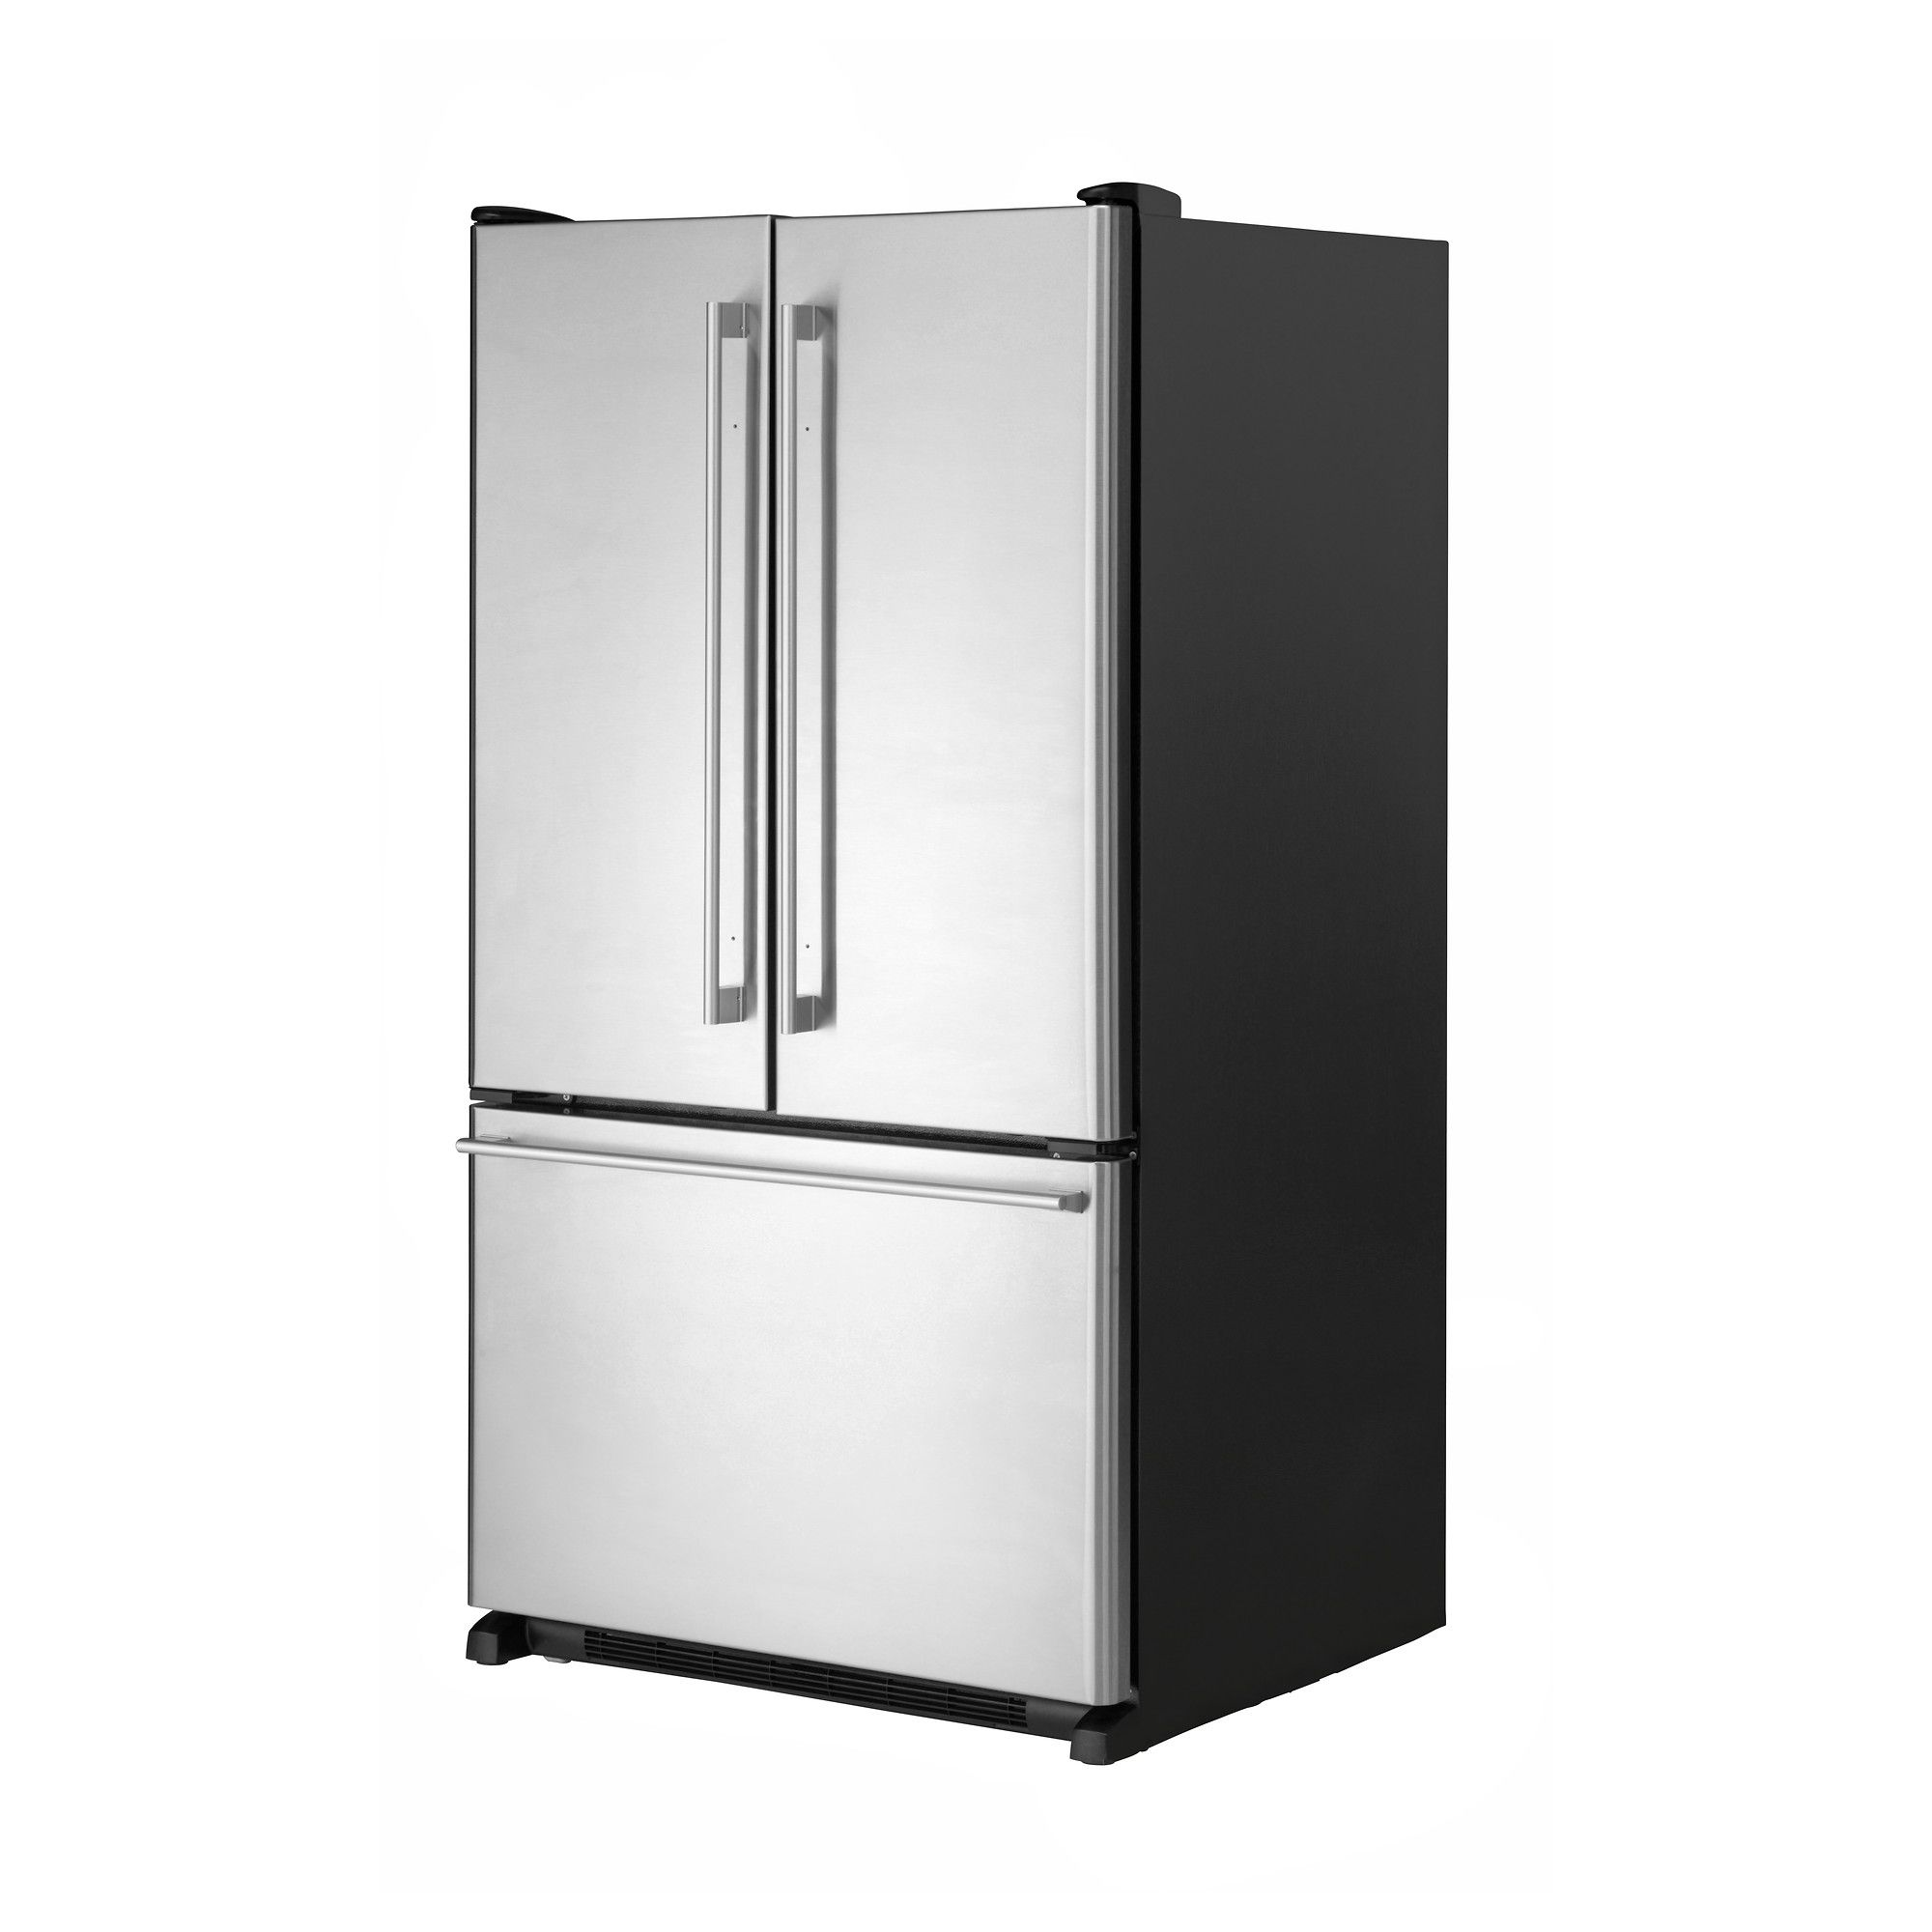 NUTID Fridge freezer IKEA Similar the the Samsung fridge we